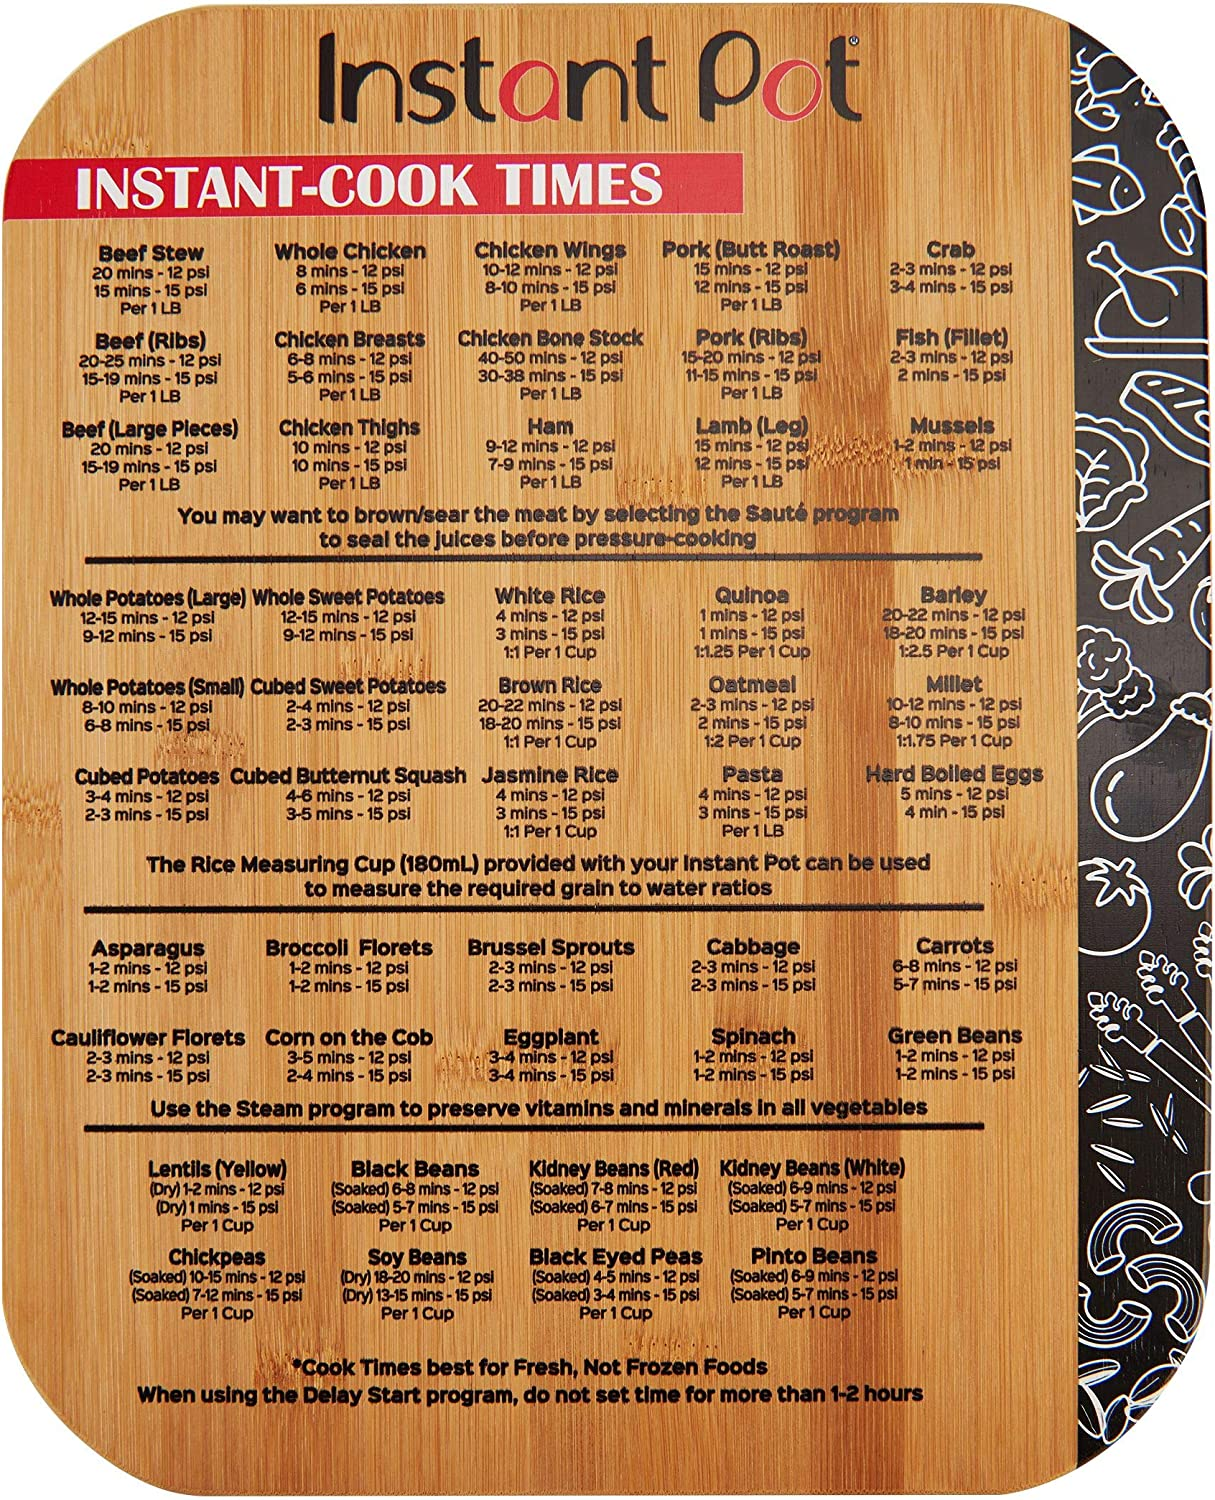 Instant Pot 5252280 Official 11x14 Bamboo Cutting Board with Cook Times, 11x14-inch, Brown